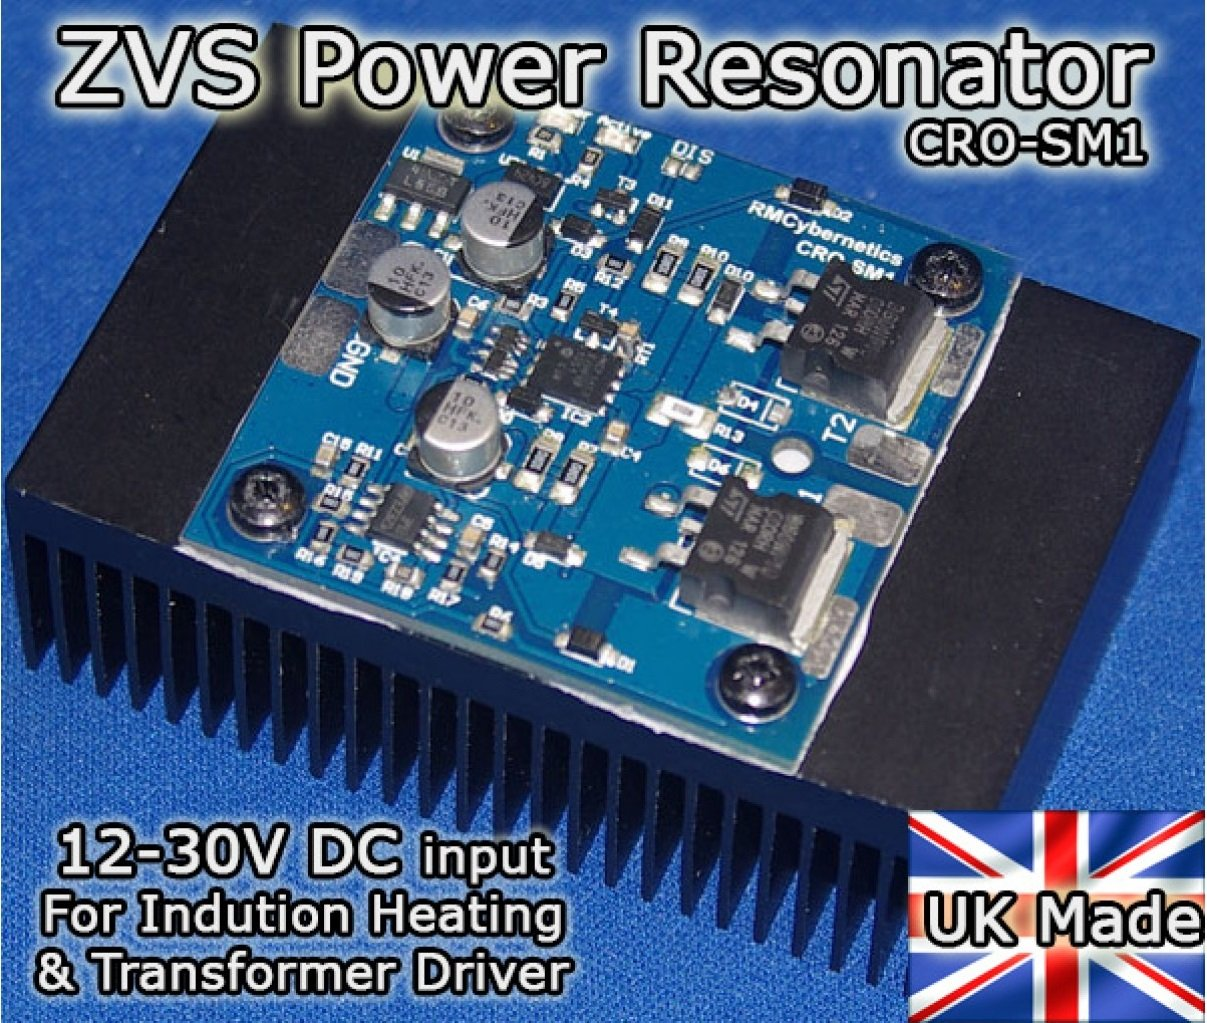 Zvs Power Resonator Cro Sm1 Ultra Compact Induction Heater Circuit Transformer Tesla Coil Driver On Schematic Diagram 1 Business Industry Science